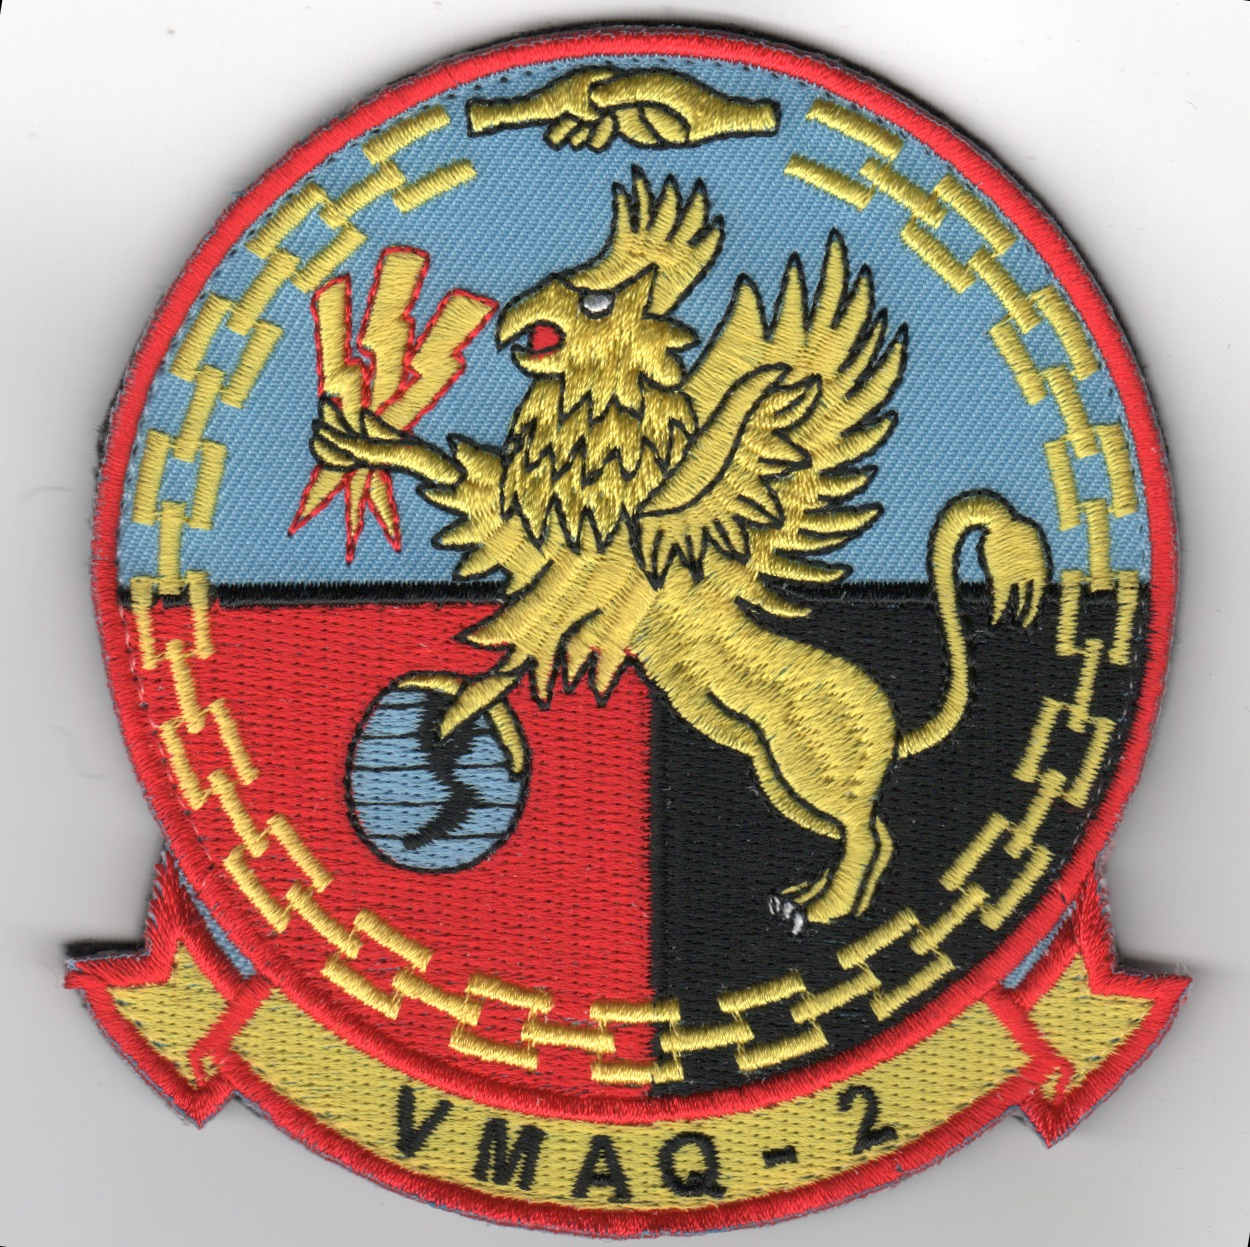 VMAQ-2 'GRIFFIN' (Old Style/Repro)